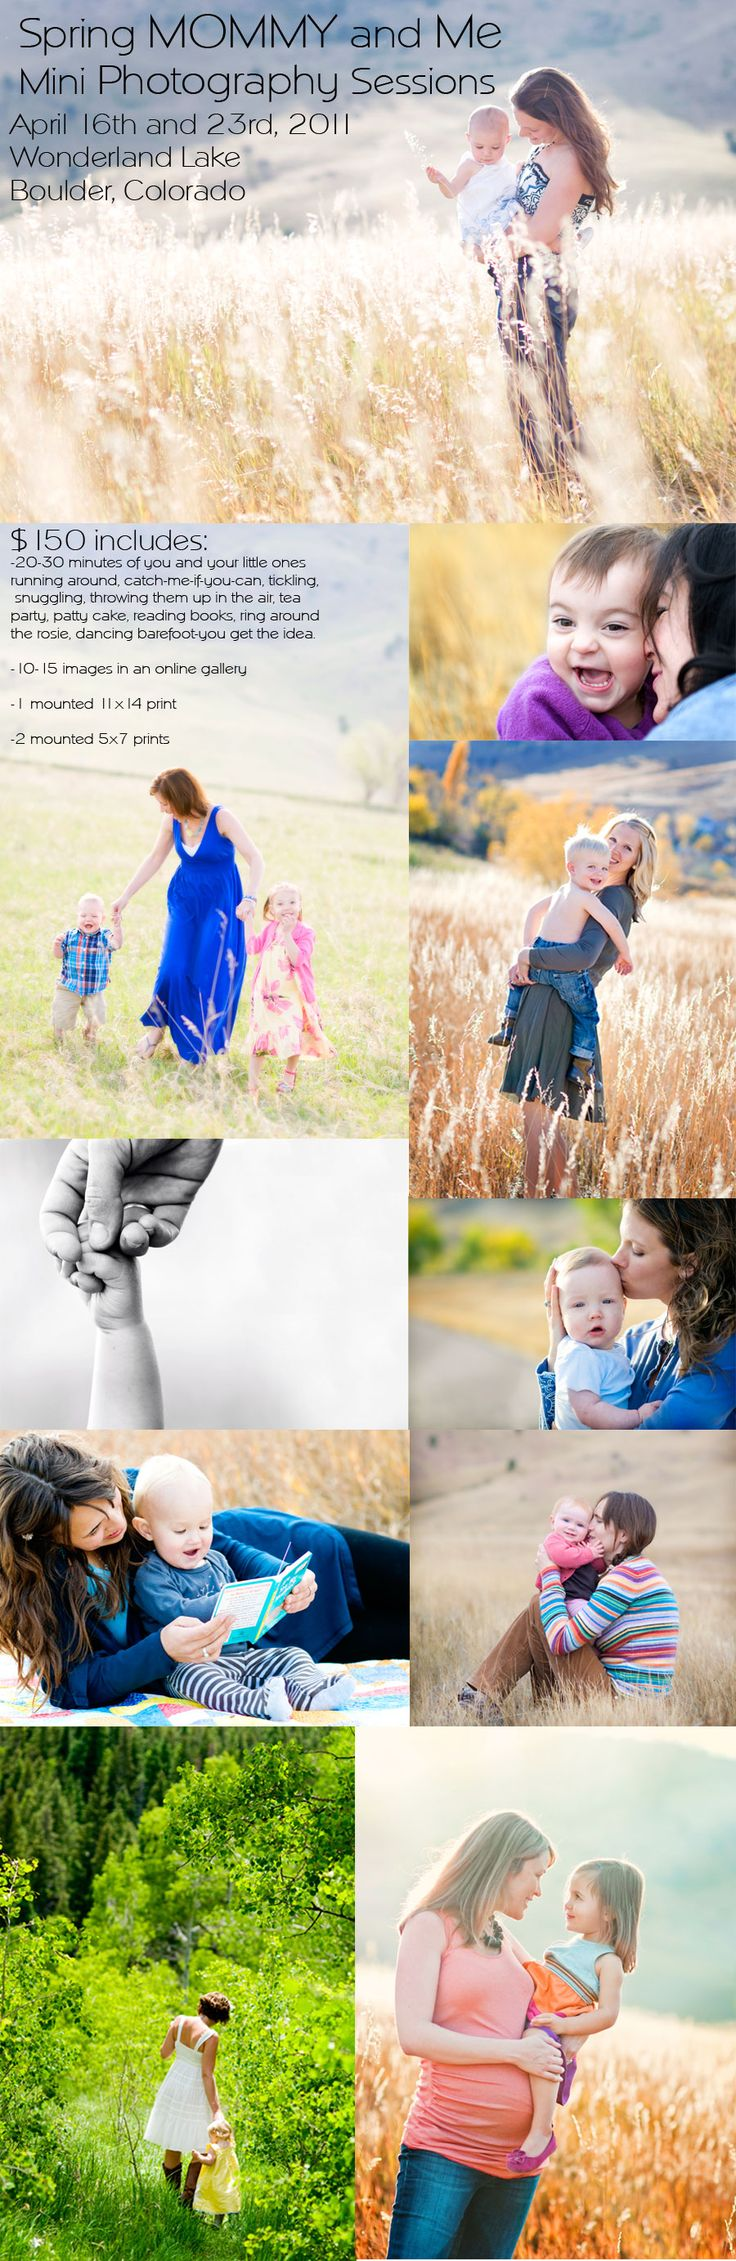 mommy and me - great mother's day idea! @Cory Adkins